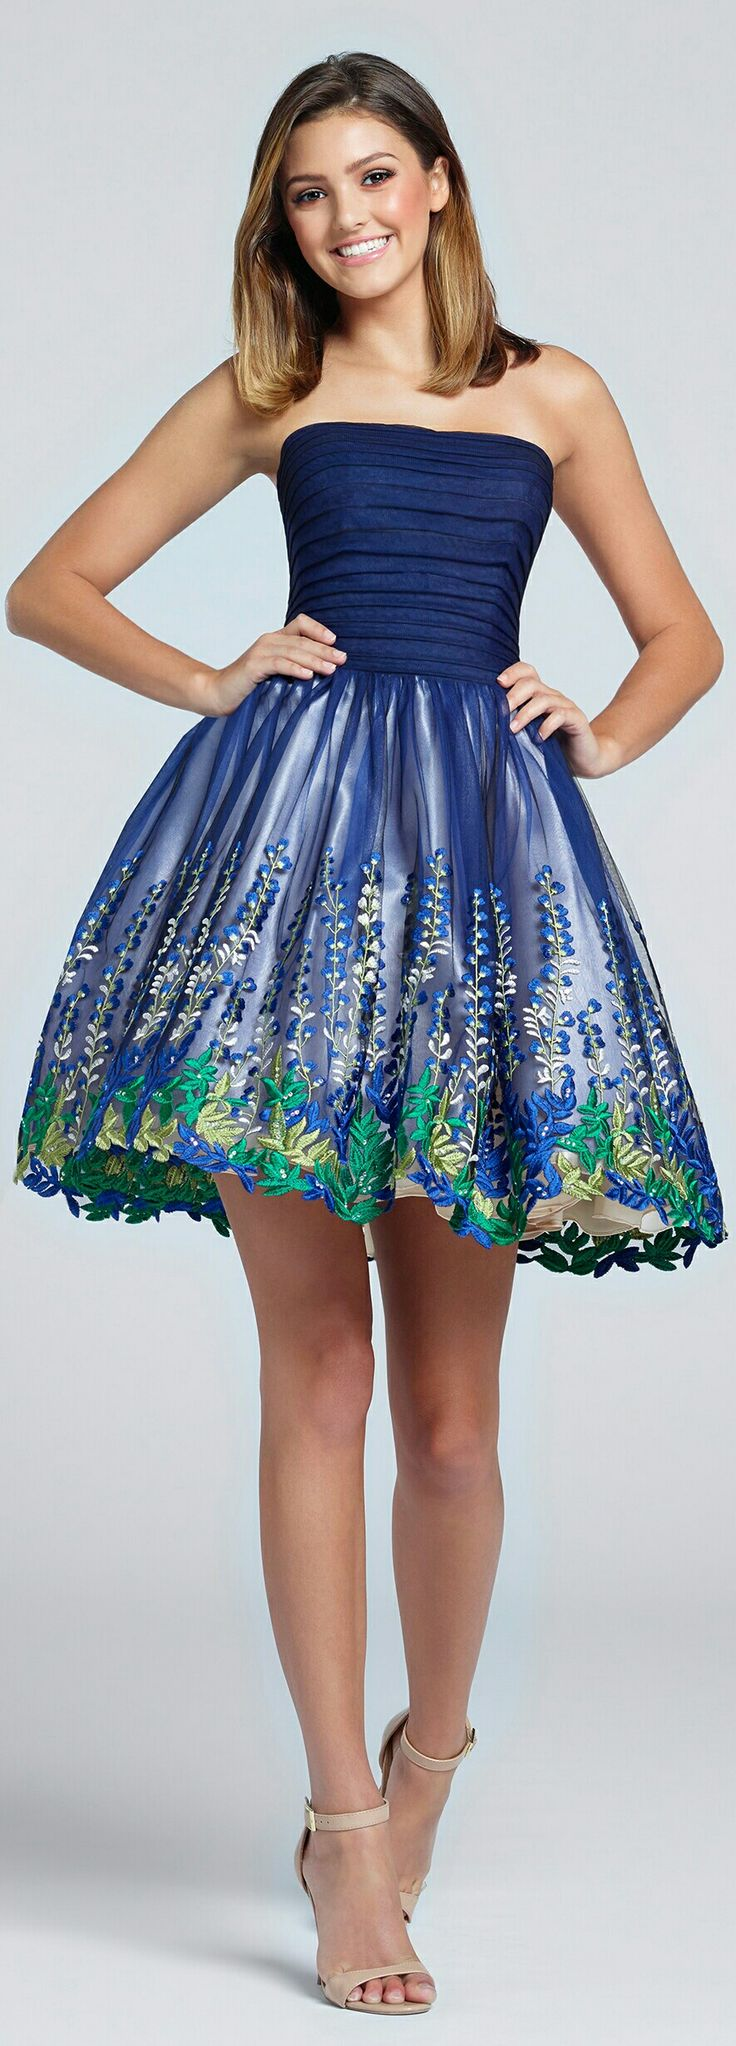 ELLIE WILDE ⚘In Navy w. Indigo Bluebell Flowers & Spring Green, Jade, & Natural Leaves and Navy Strapless Halter Top of Cocktail-Style/Prom Dress ⚘#117147.